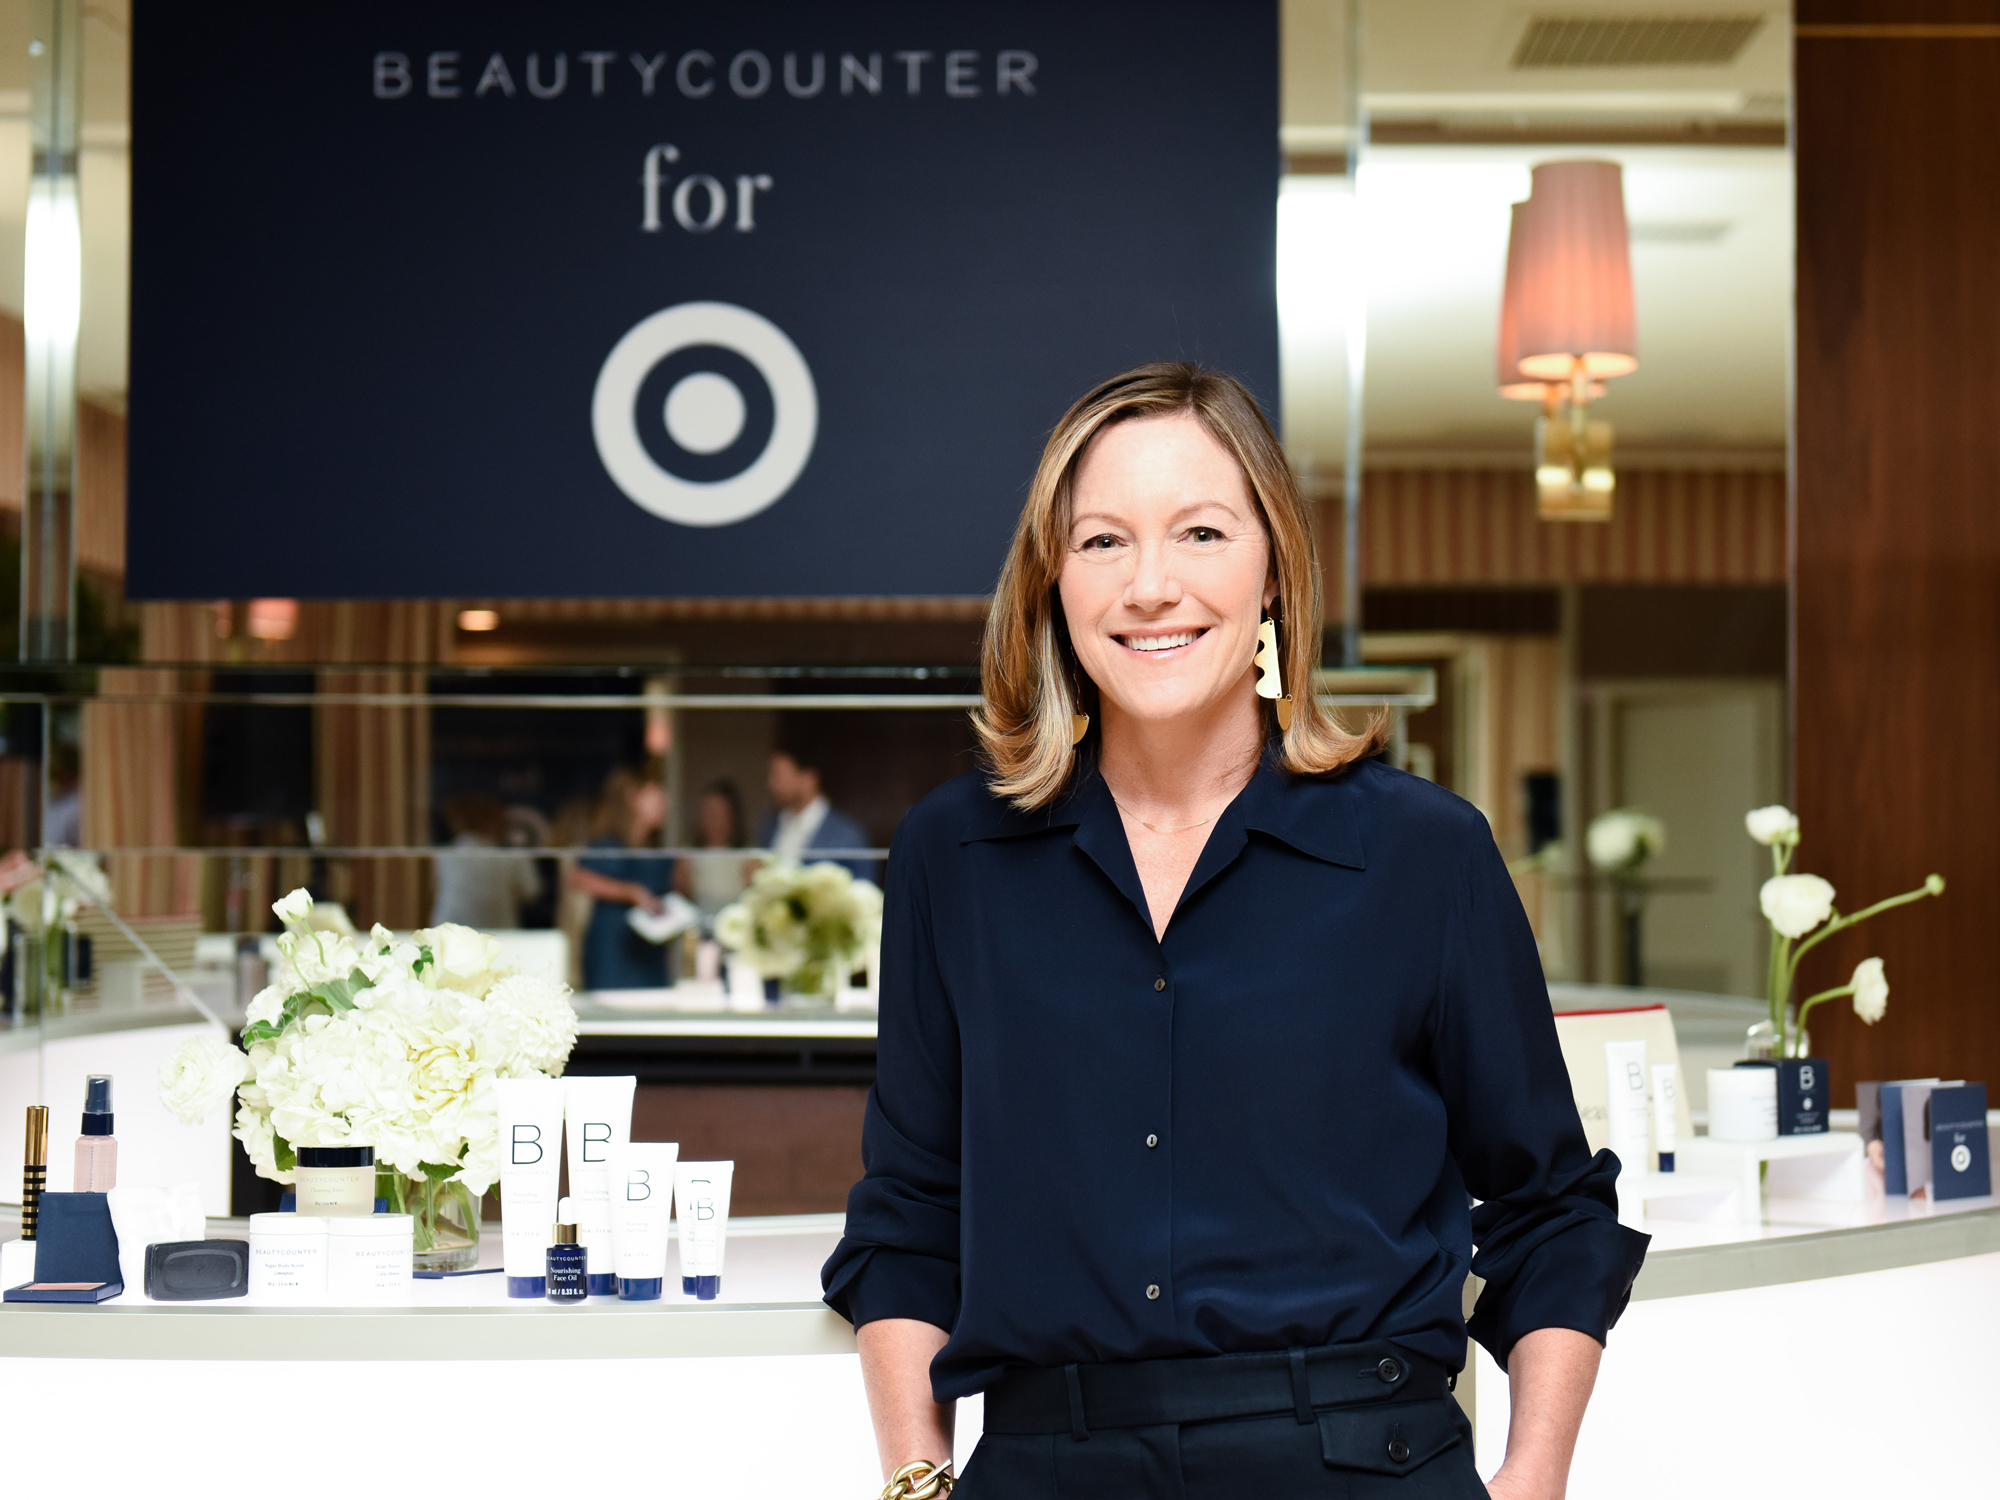 Beauty Counter for Target - event by Amy Zaroff